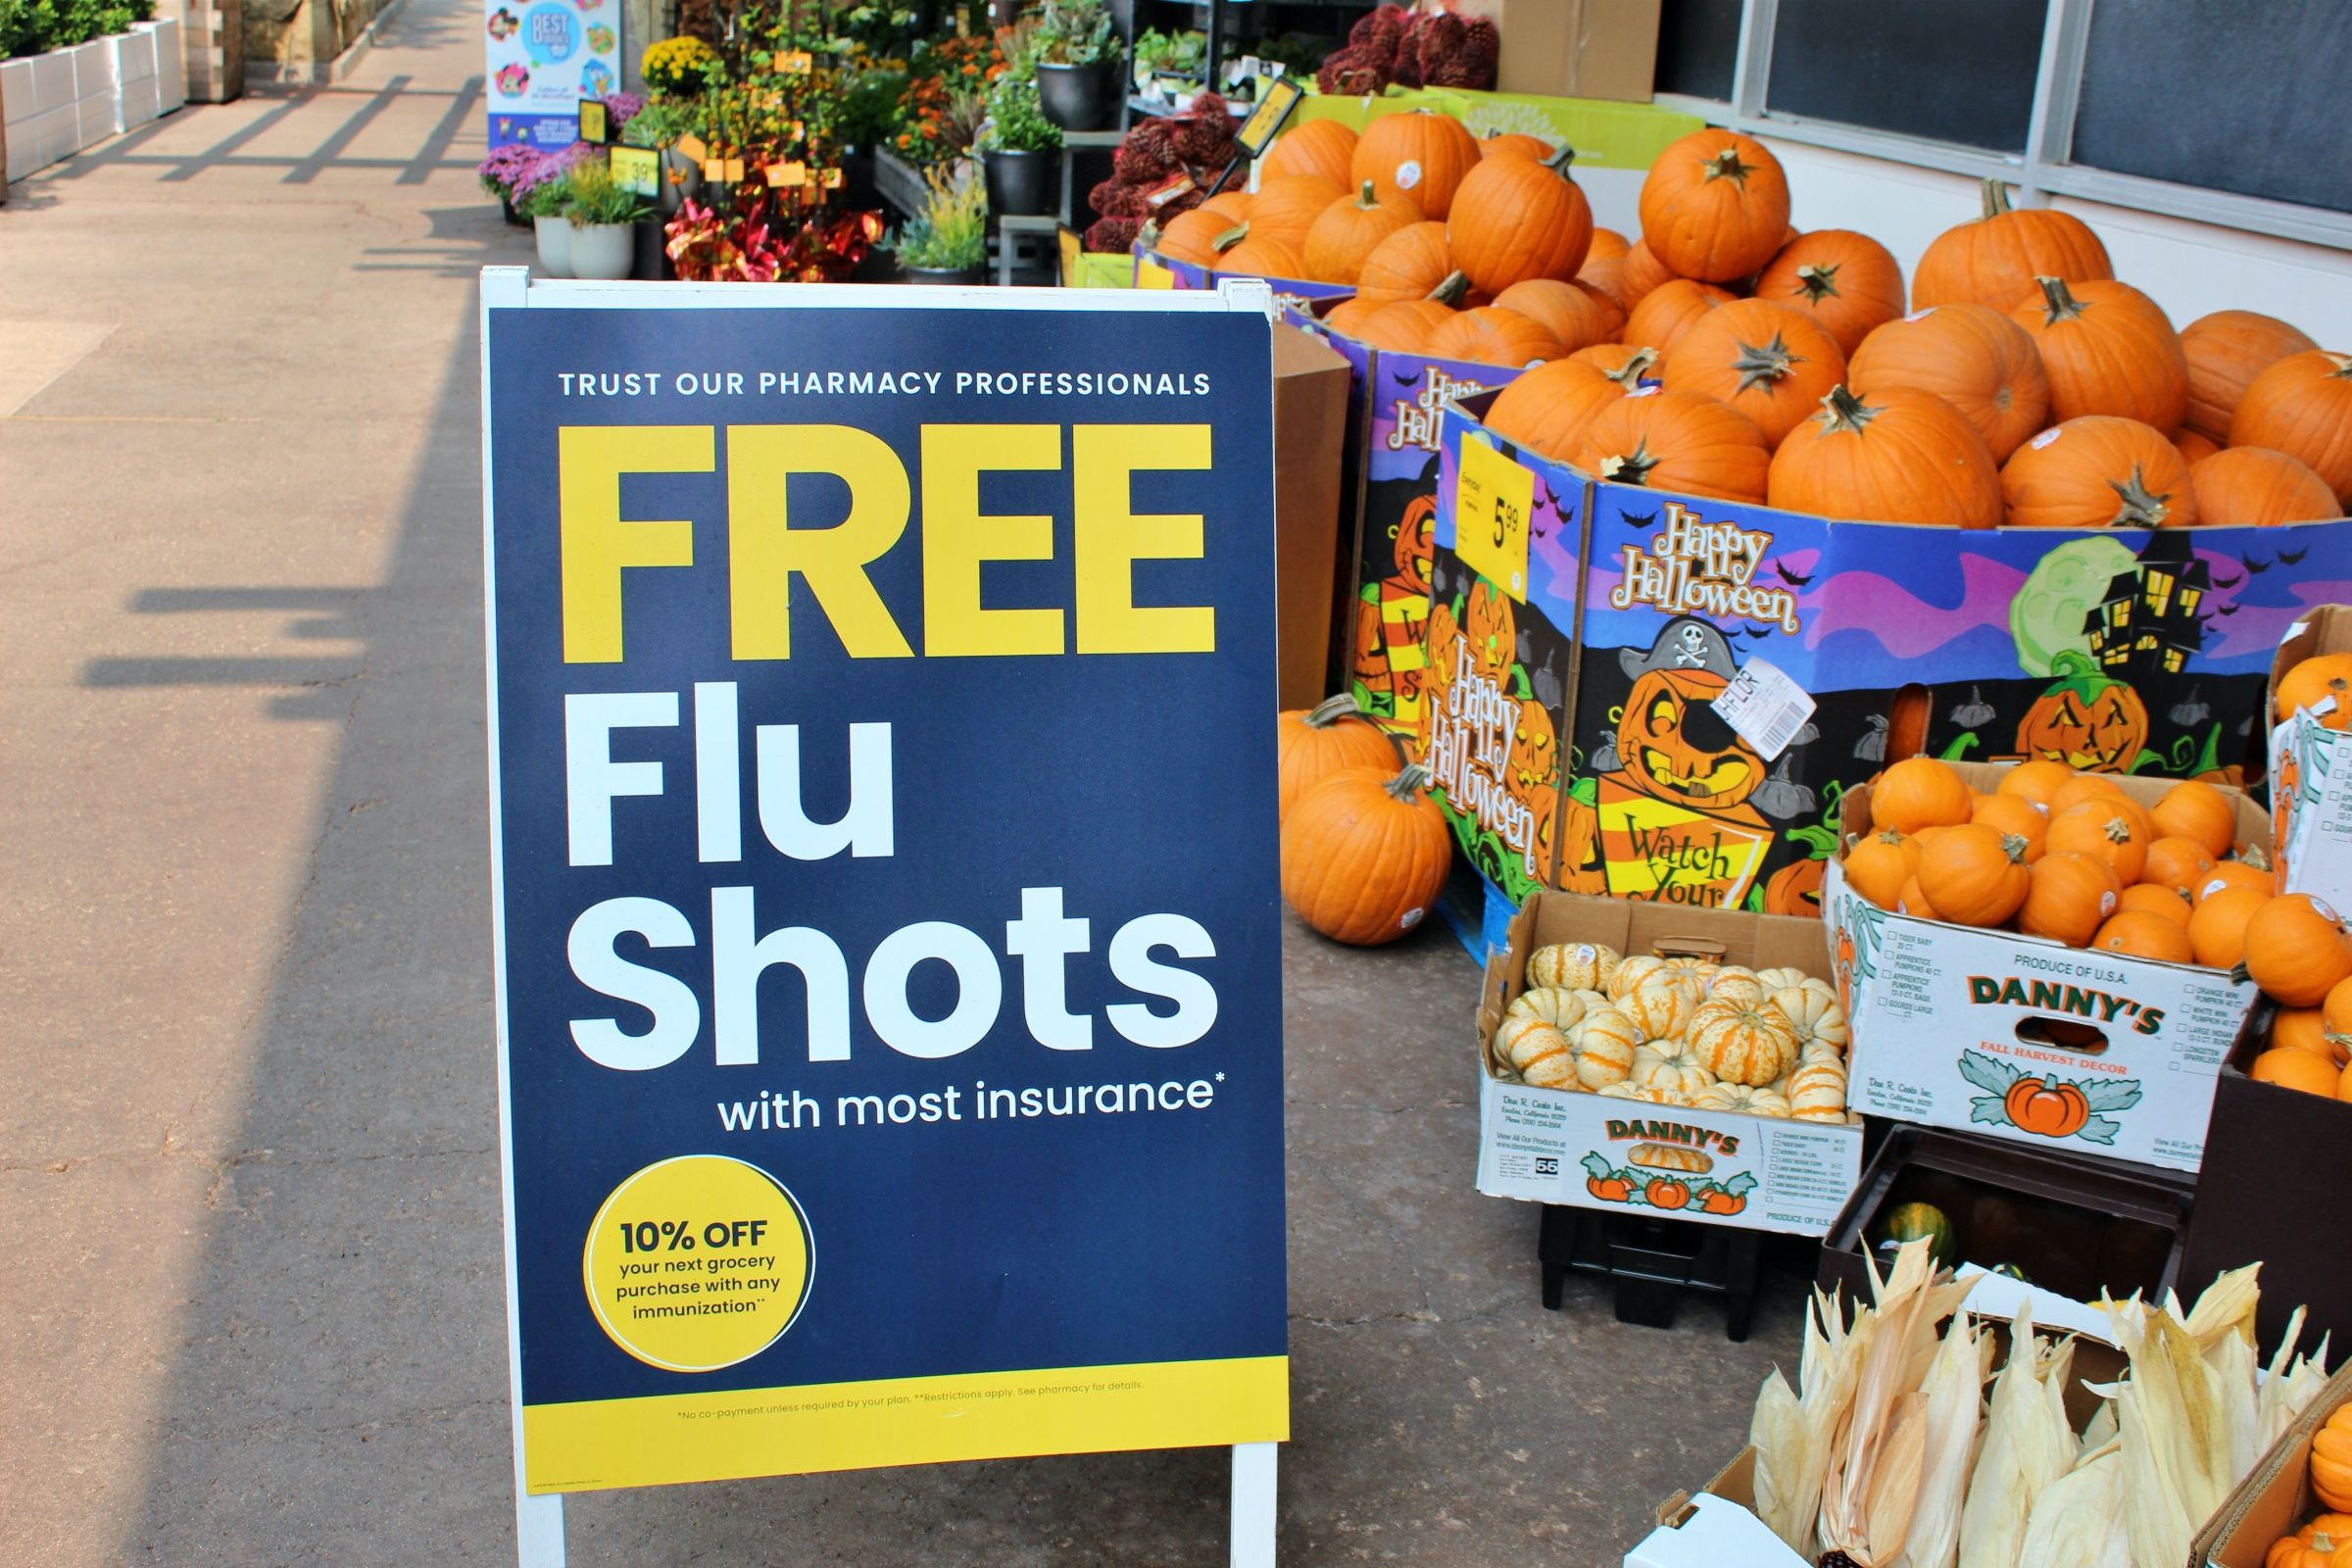 Cleveland Clinic Study Says Flu Vaccine Does Not Increase COVID-19 Risk